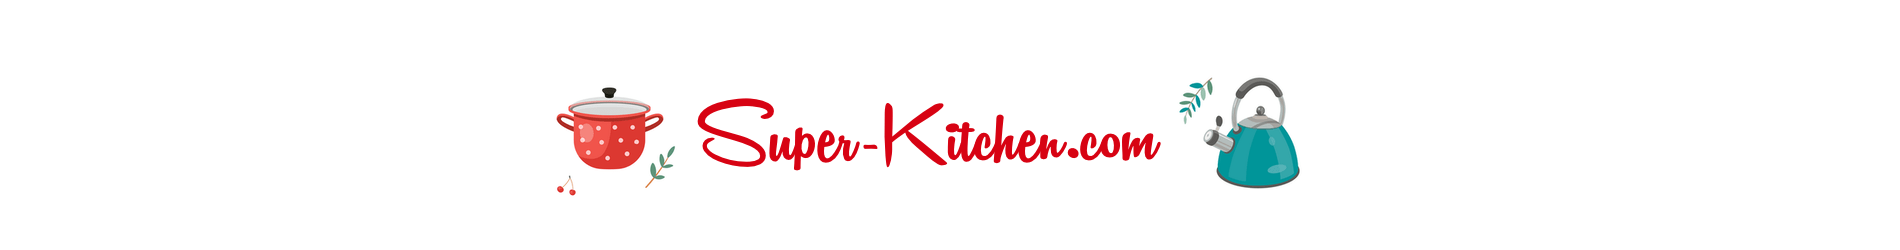 Super-Kitchen.com